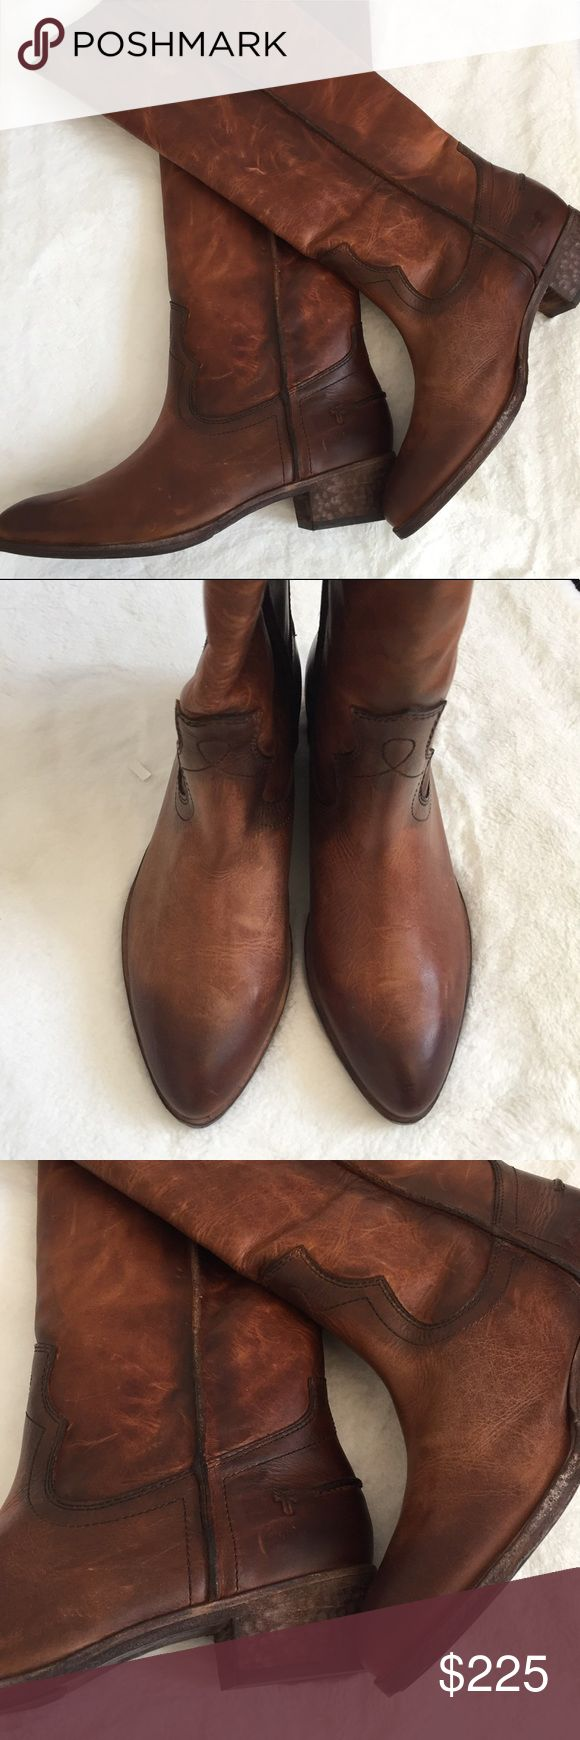 "Frye | Tall Cognac Boots Frye tall leather boots. Cognac color and pull up style with natural distressed leather. Extremely soft and comfortable. Unfortunately they don't fit my calves. 1.5"" heel height. New with box. Frye Shoes Heeled Boots"